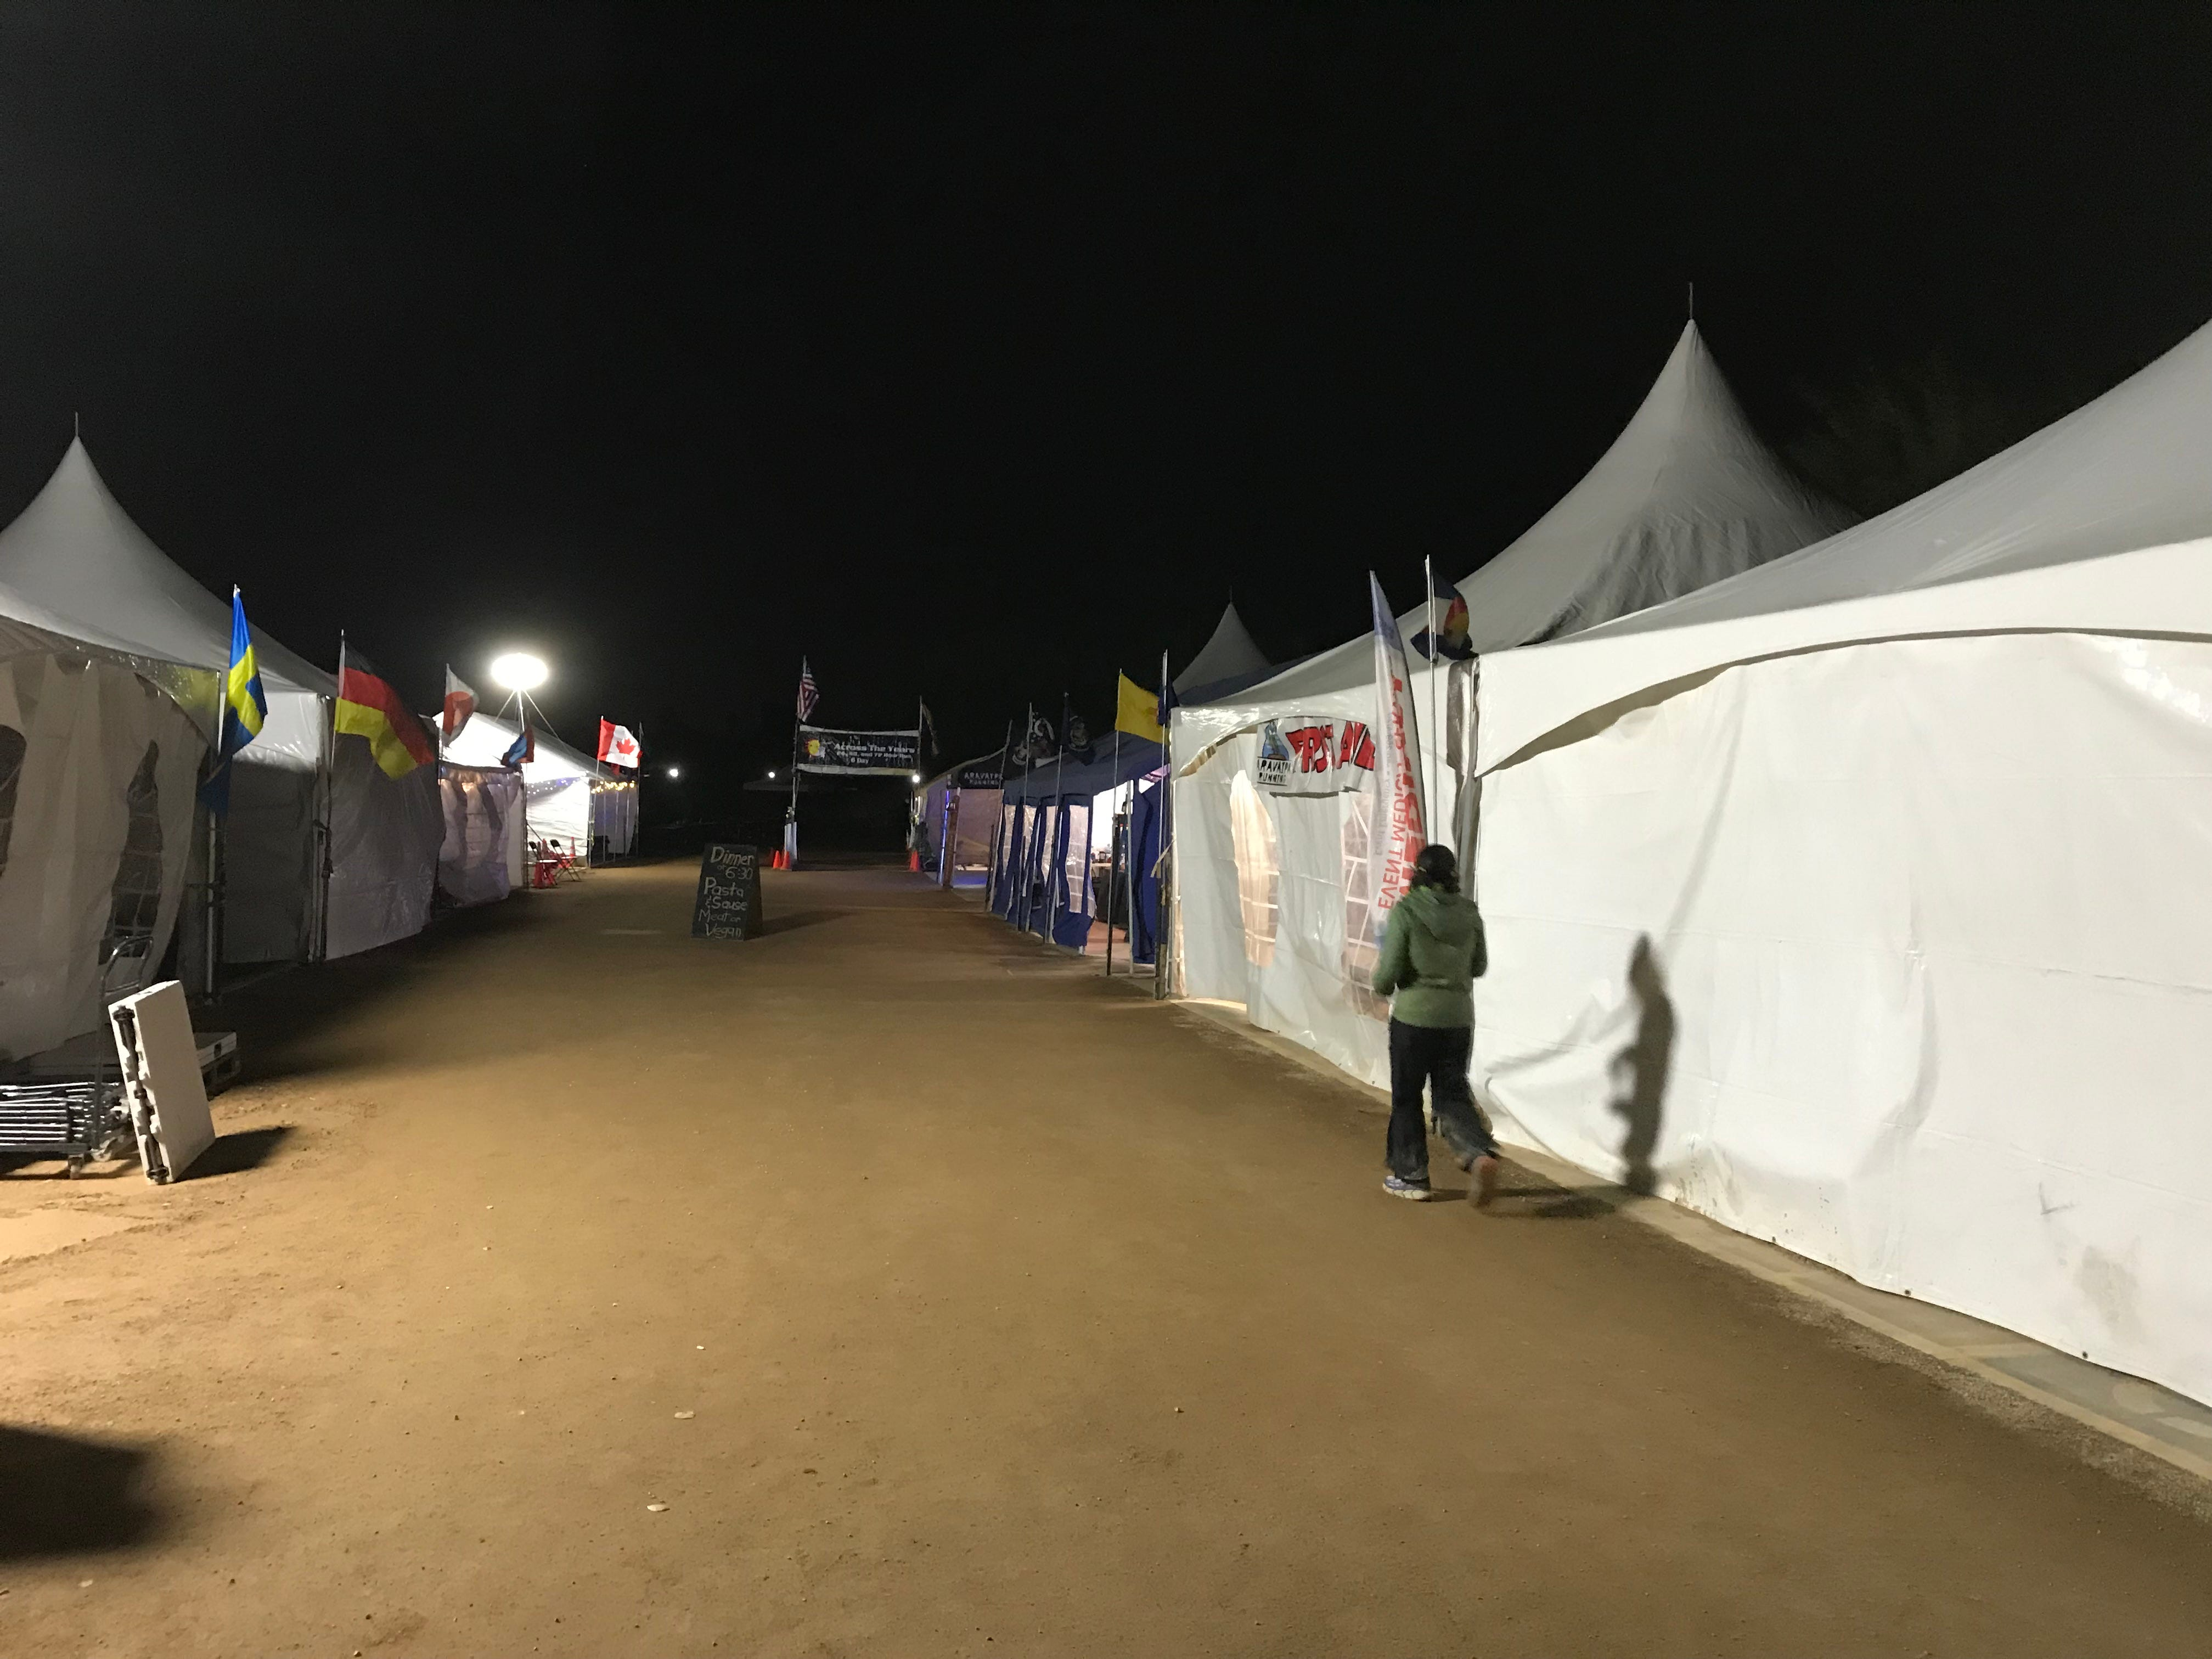 Hours before sunrise, a solitary runner approaches the Across the Years start line at Camelback Ranch in Glendale. Entrants competed in one-, two-, three- and six-day ultramarathons.